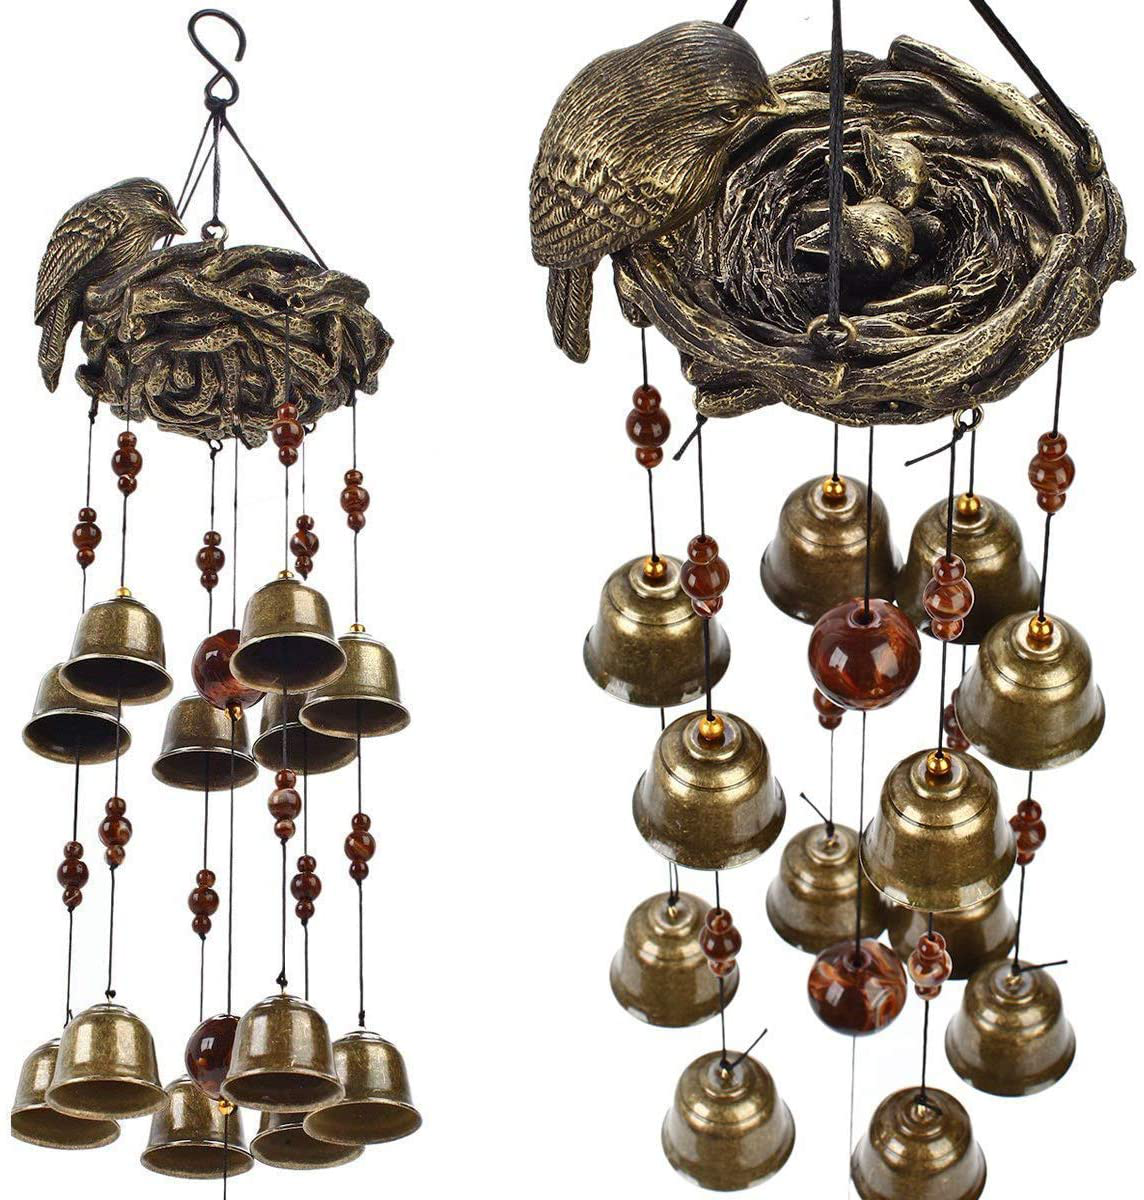 Gardenvy Bird Nest Wind Chime, Bird Bells Chimes with 12 Wind Bells for Glory Mother's Love Gift, Garden Backyard Church Hanging Decor, Bronze